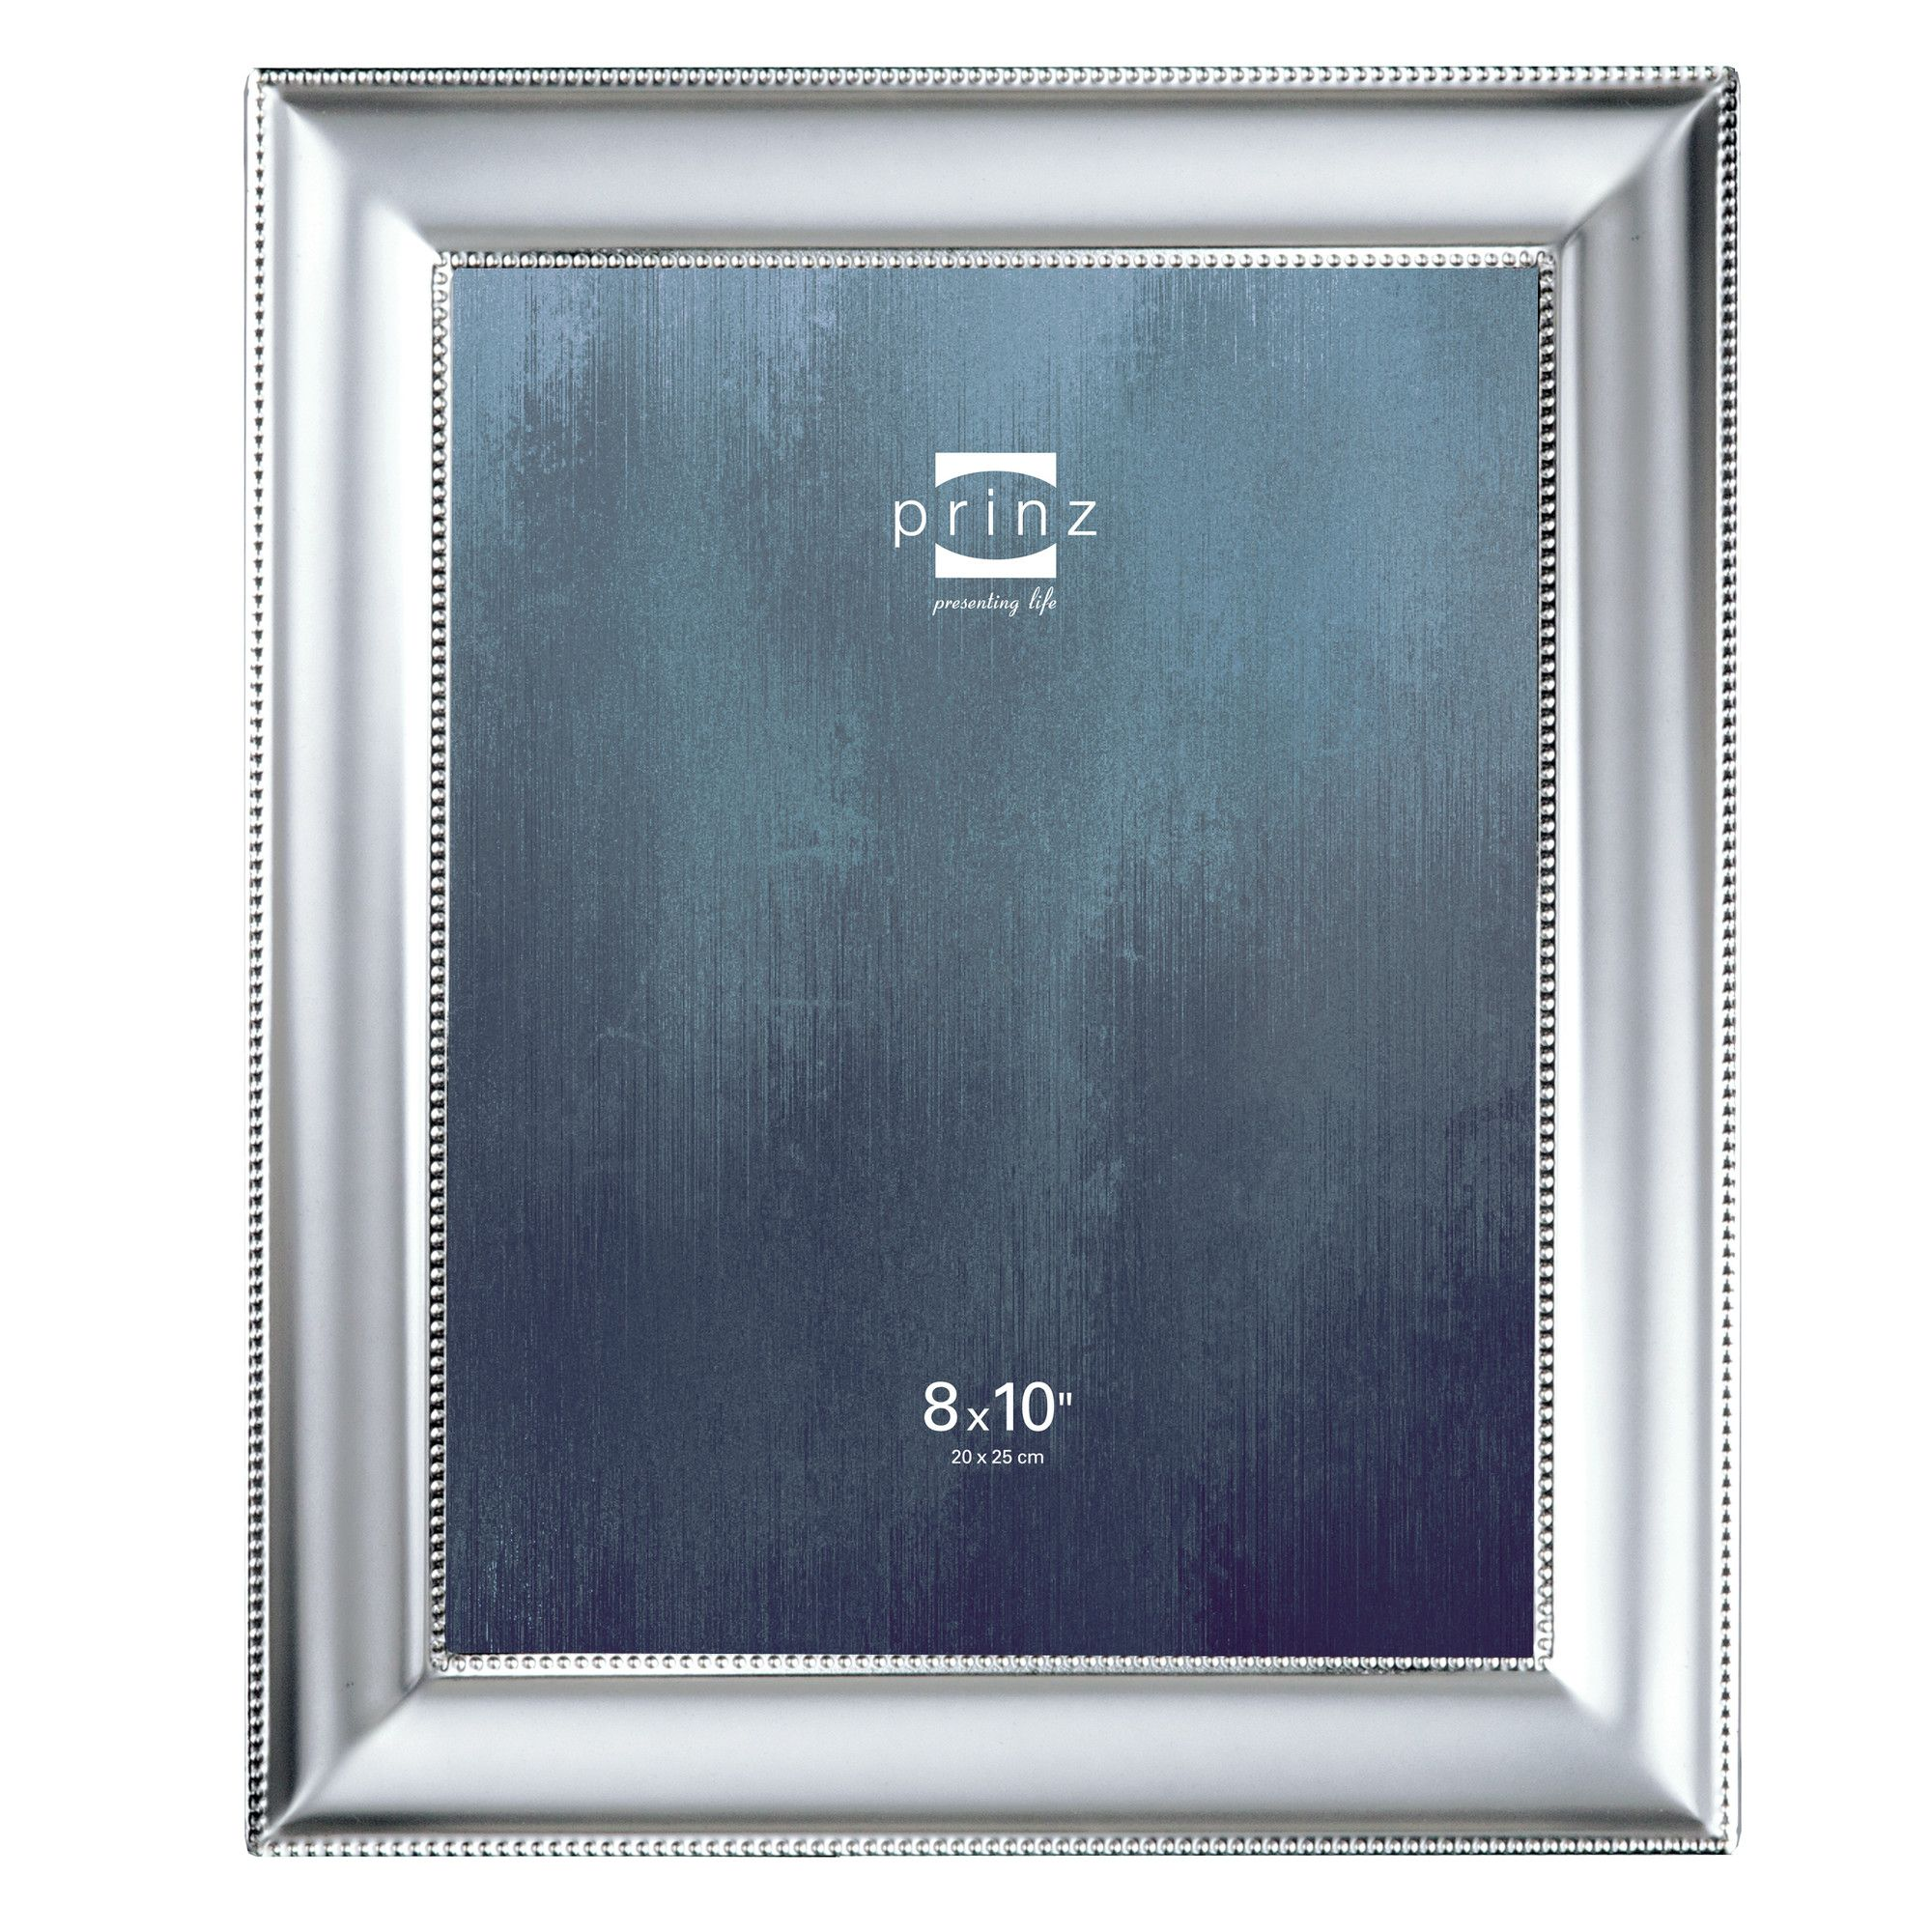 Silhouette Matte Silverplated Picture Frame | Products | Pinterest ...